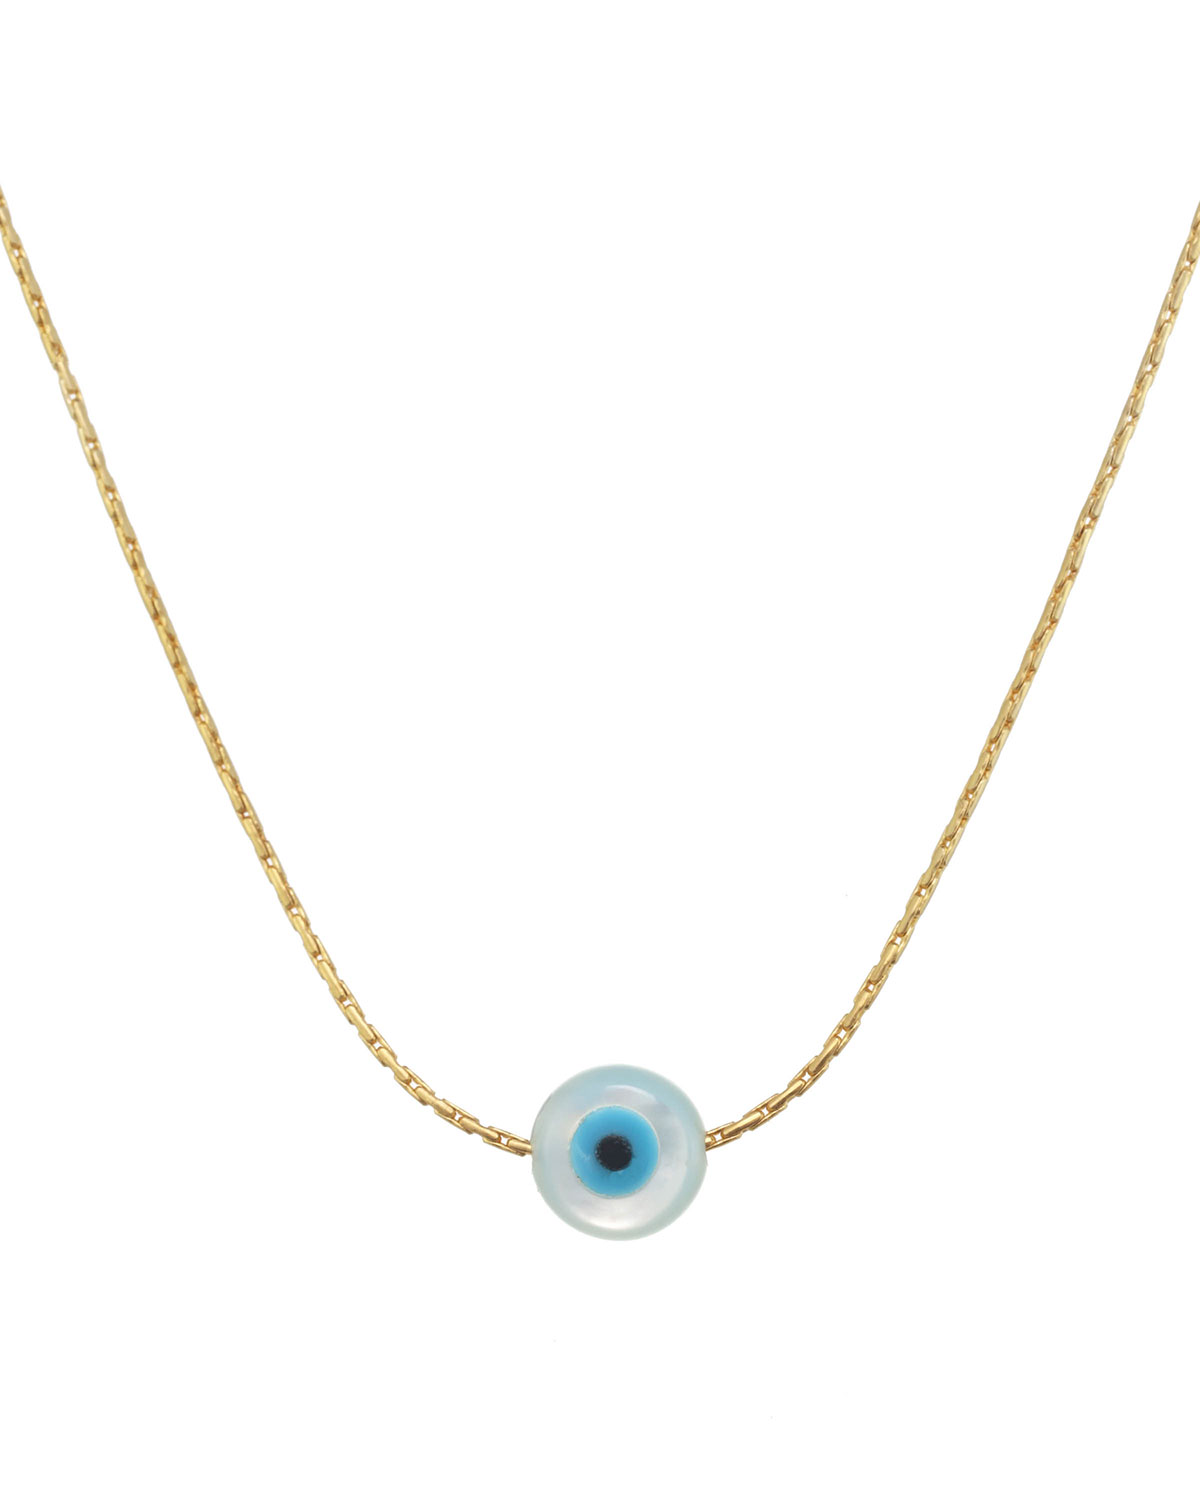 Idra Mother-of-Pearl Eye Charm Pendant Necklace